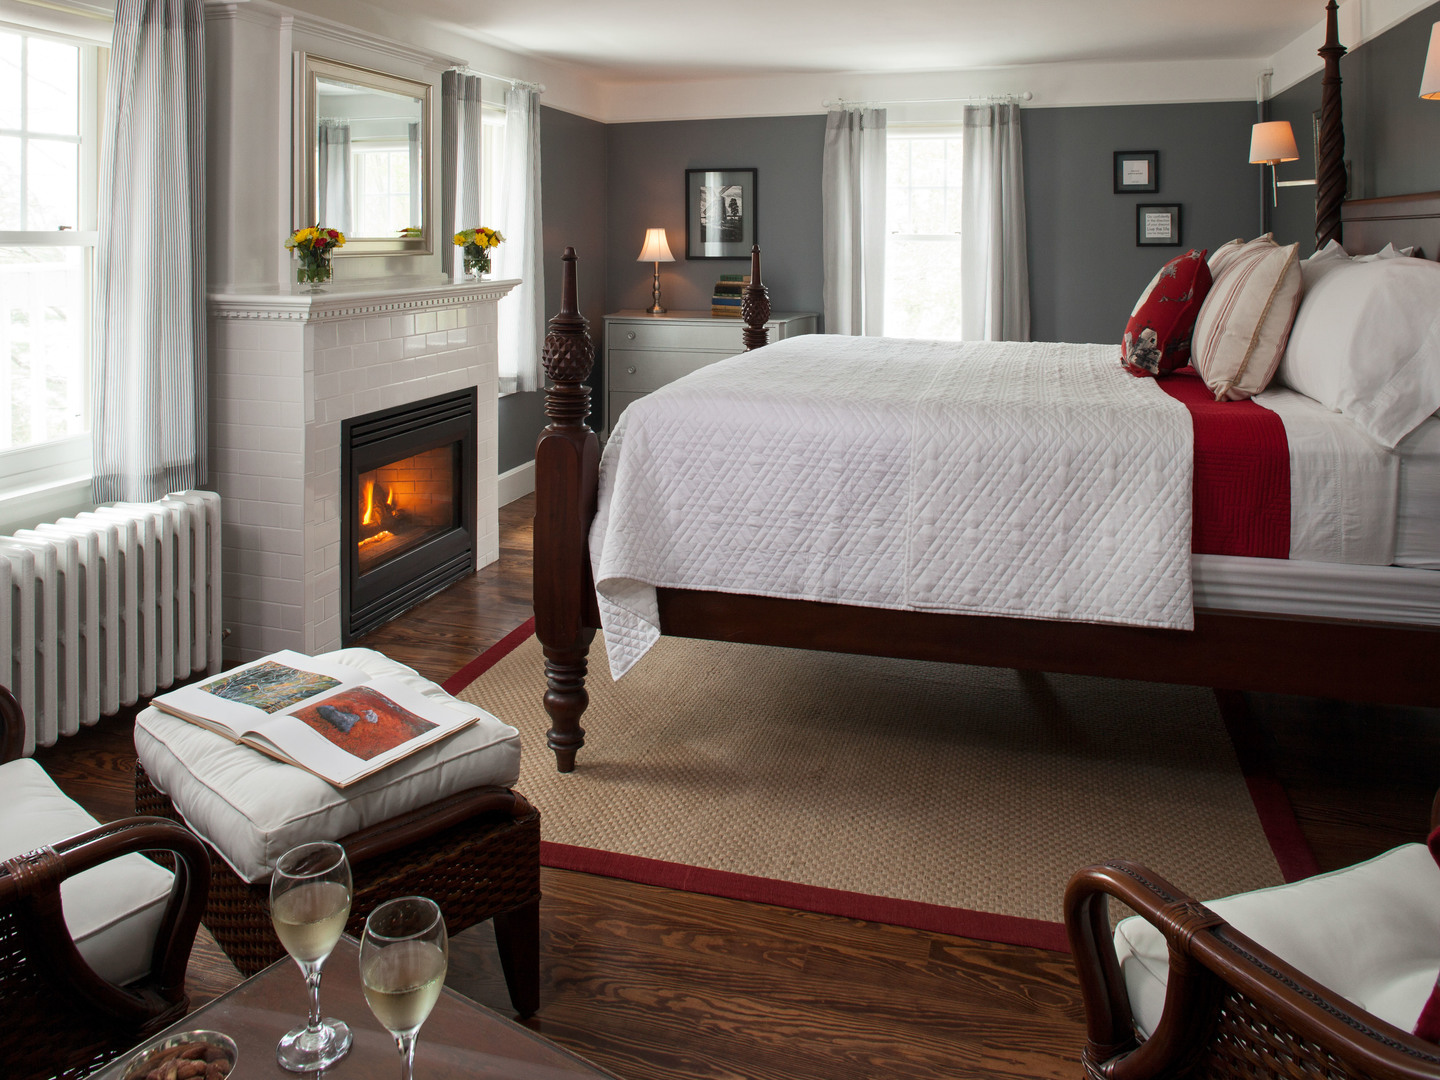 Newcastle Bed and Breakfast